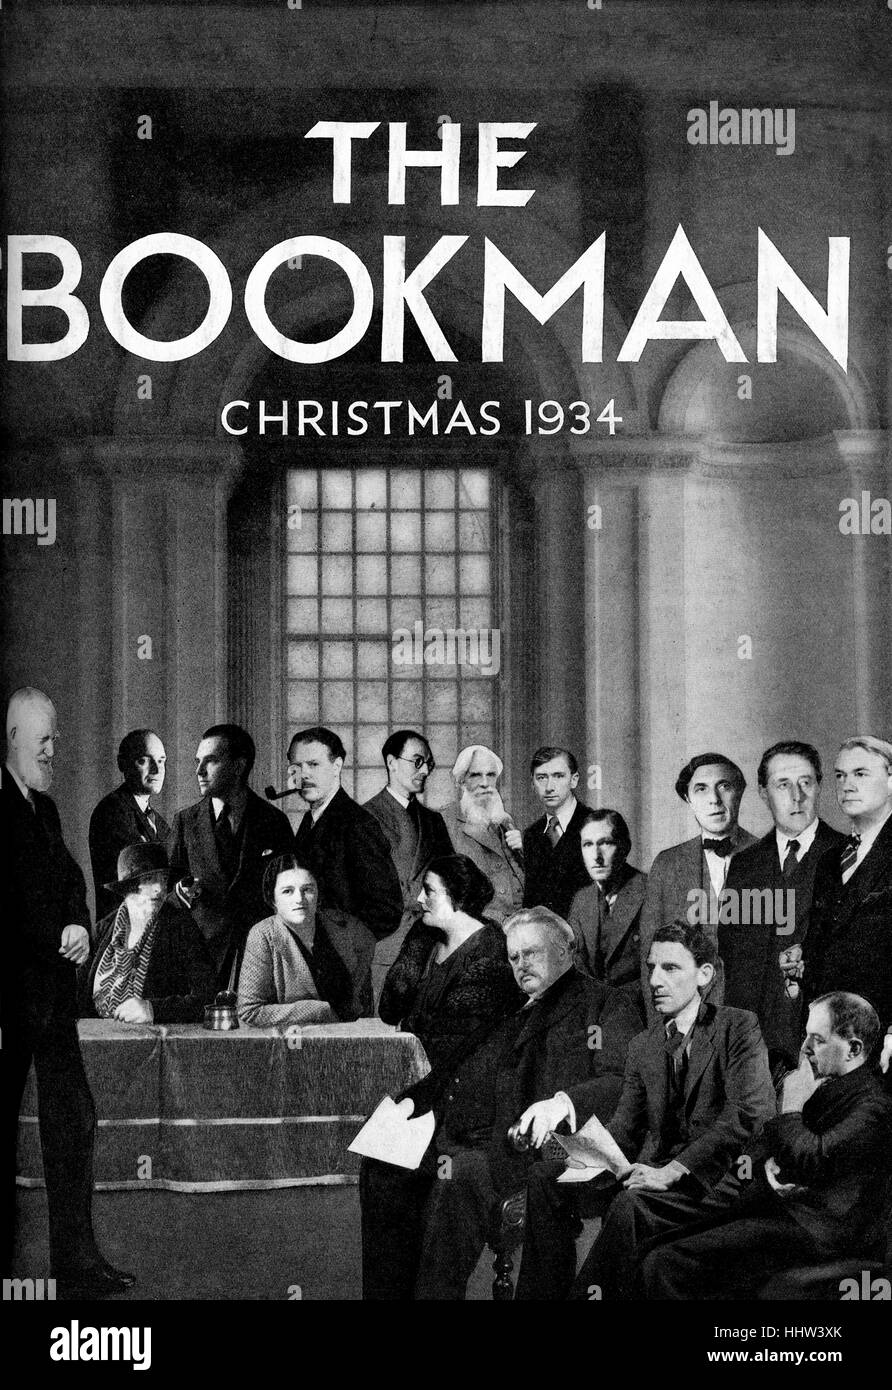 1930s literary figures on the cover of 'The Bookman' Christmas 1934.  Caption reads: 'A literary collection - Stock Image